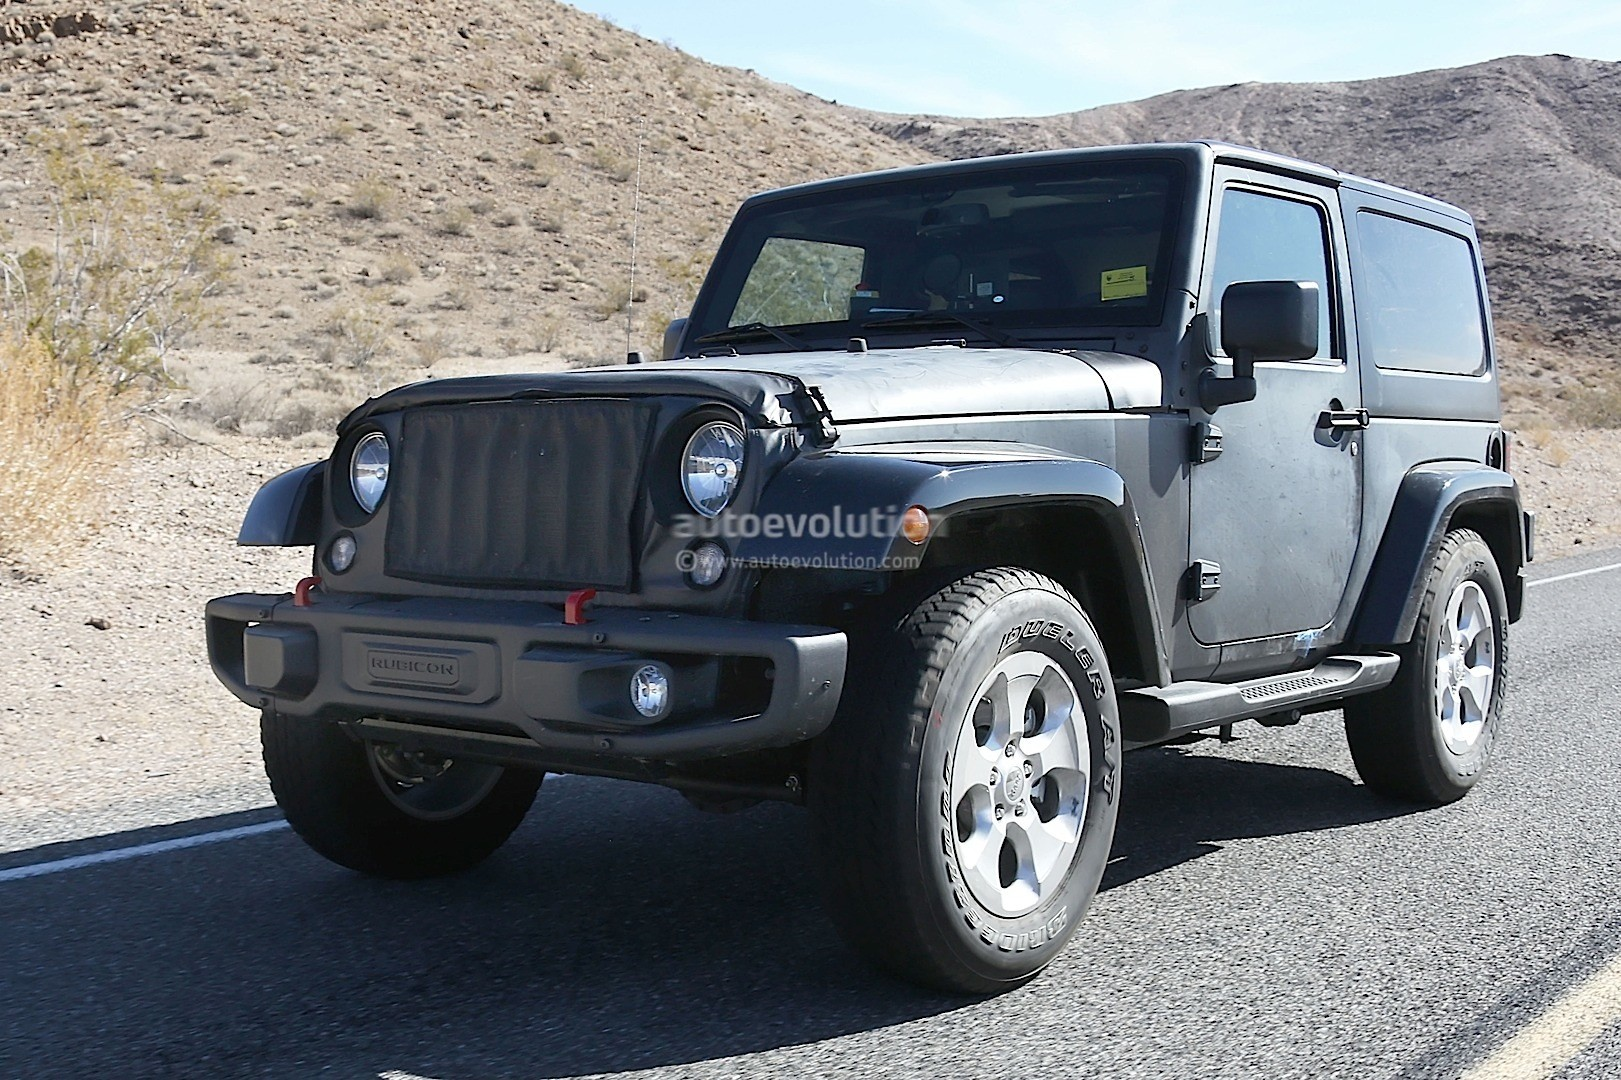 New 2018 Jeep Wrangler Spied Testing in the Desert, Will ...